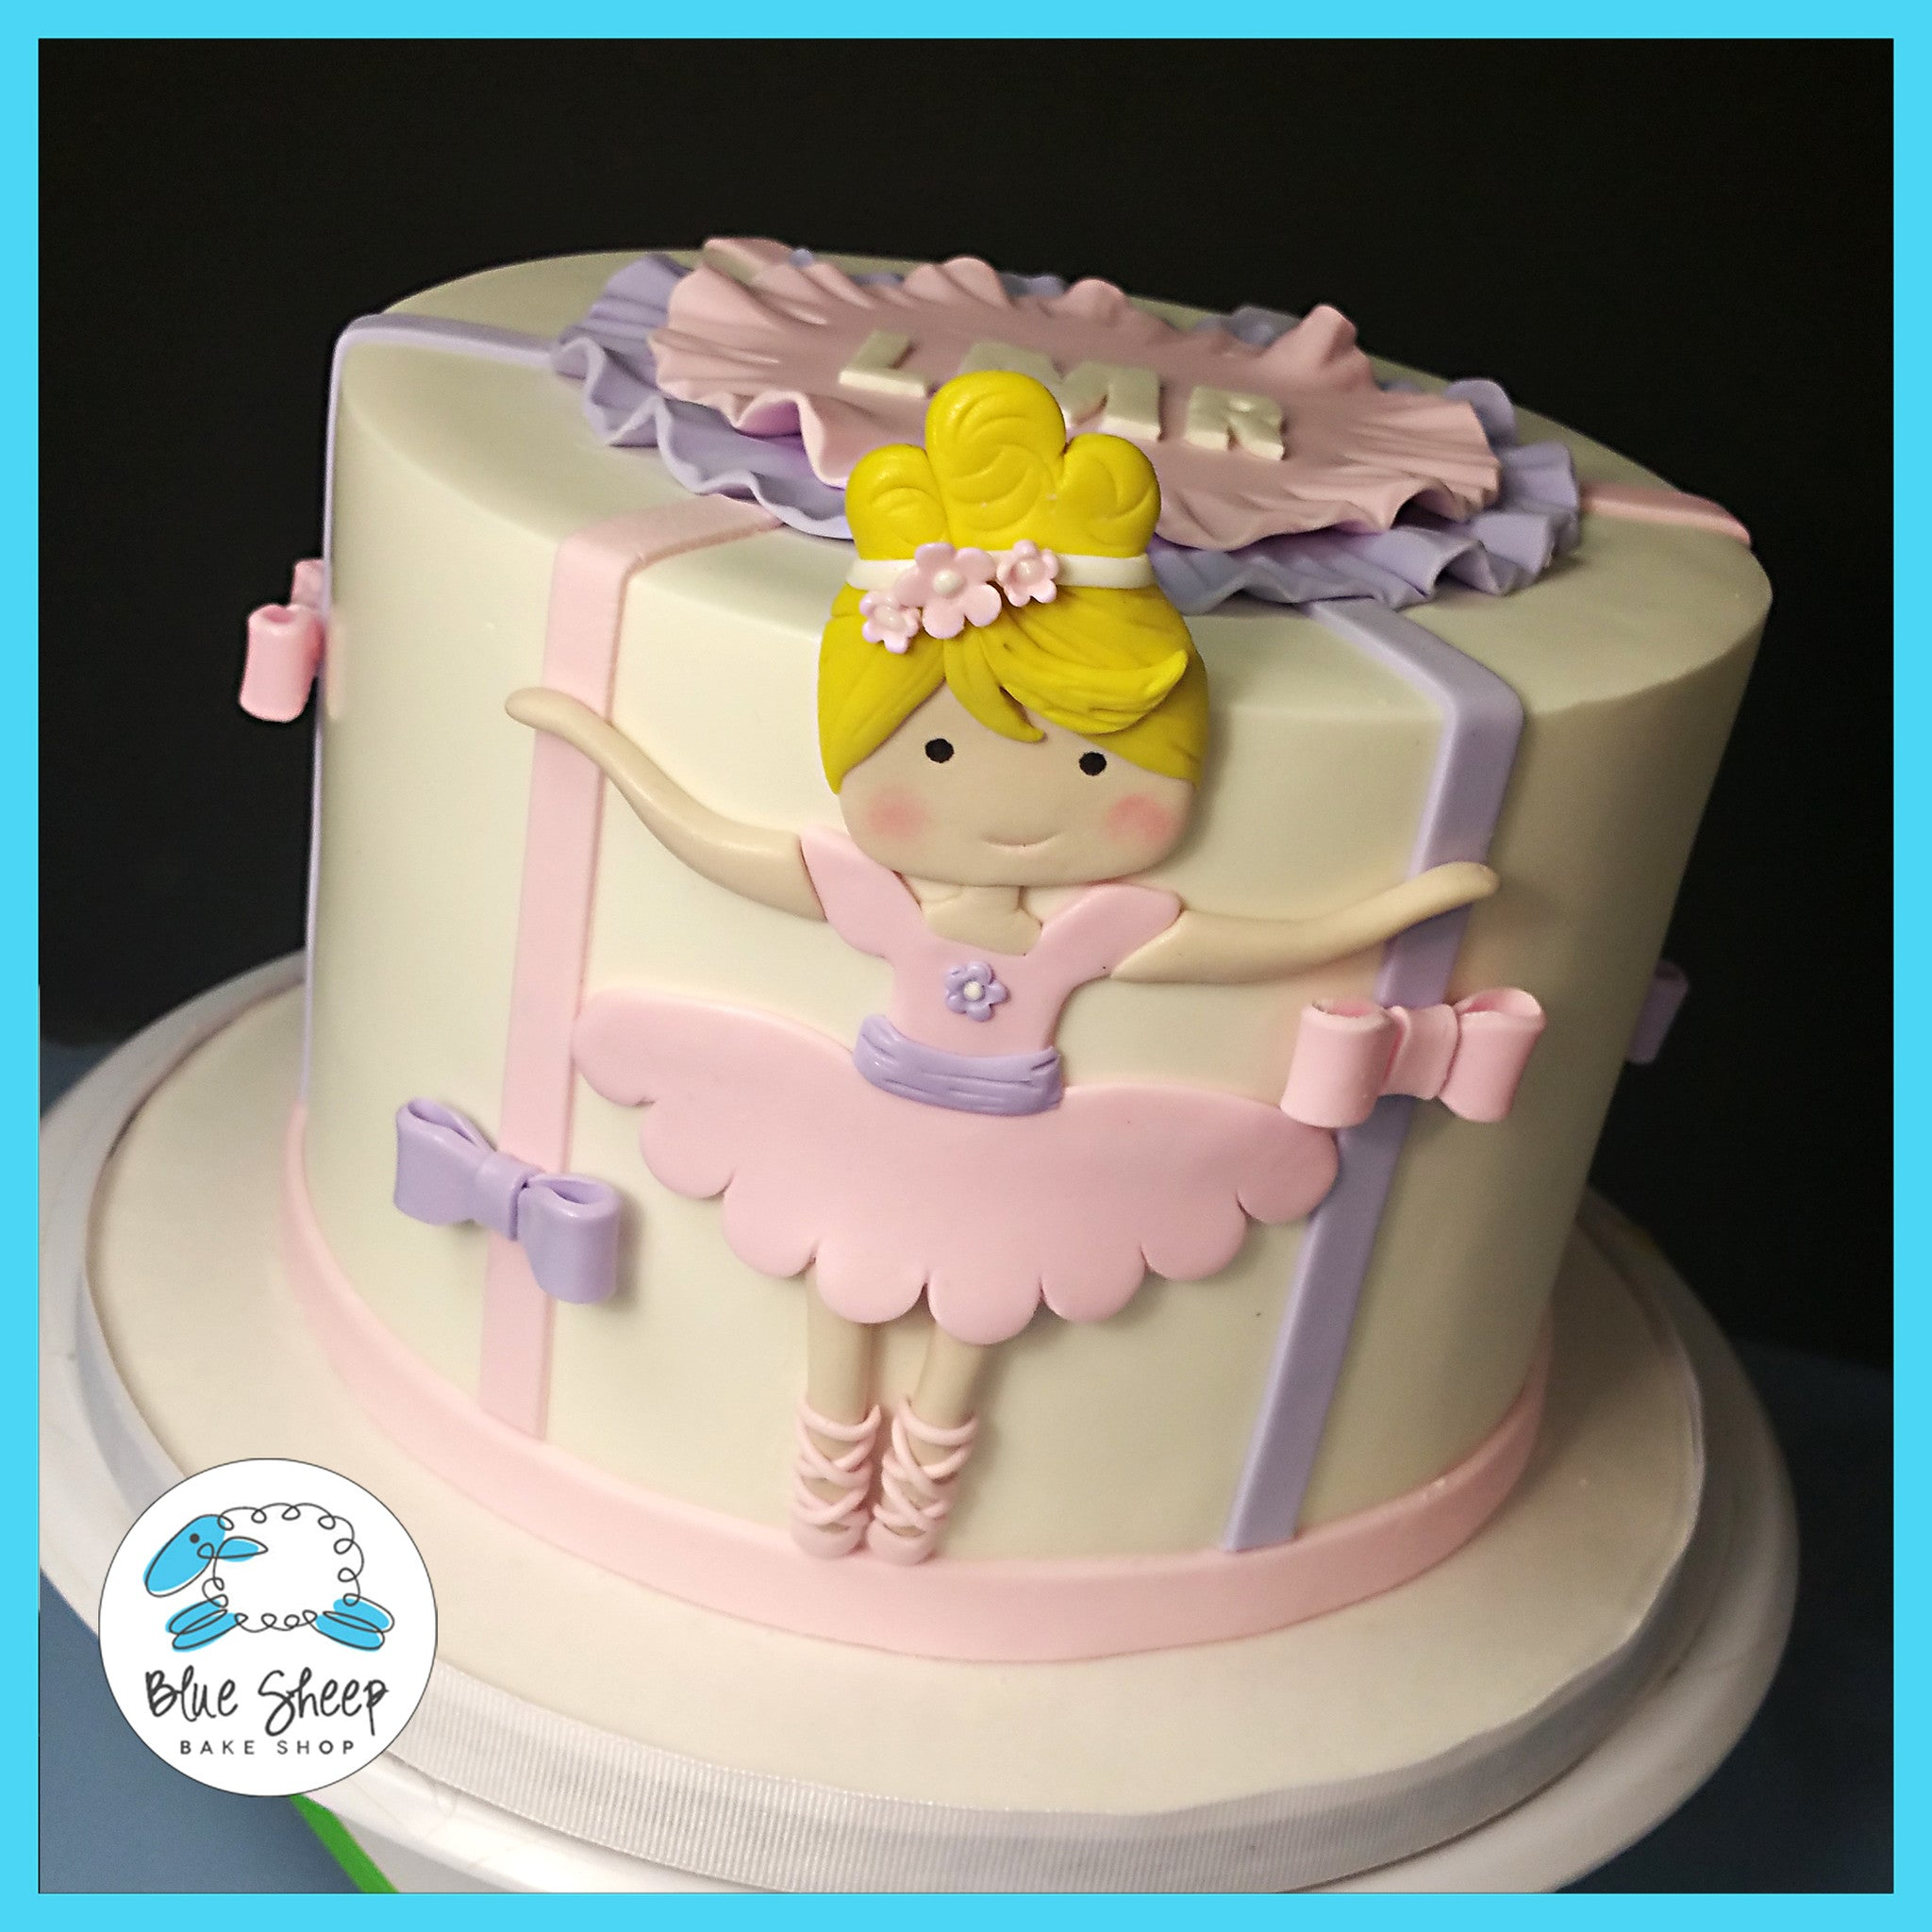 Phenomenal Ballerina Birthday Cake Blue Sheep Bake Shop Personalised Birthday Cards Paralily Jamesorg